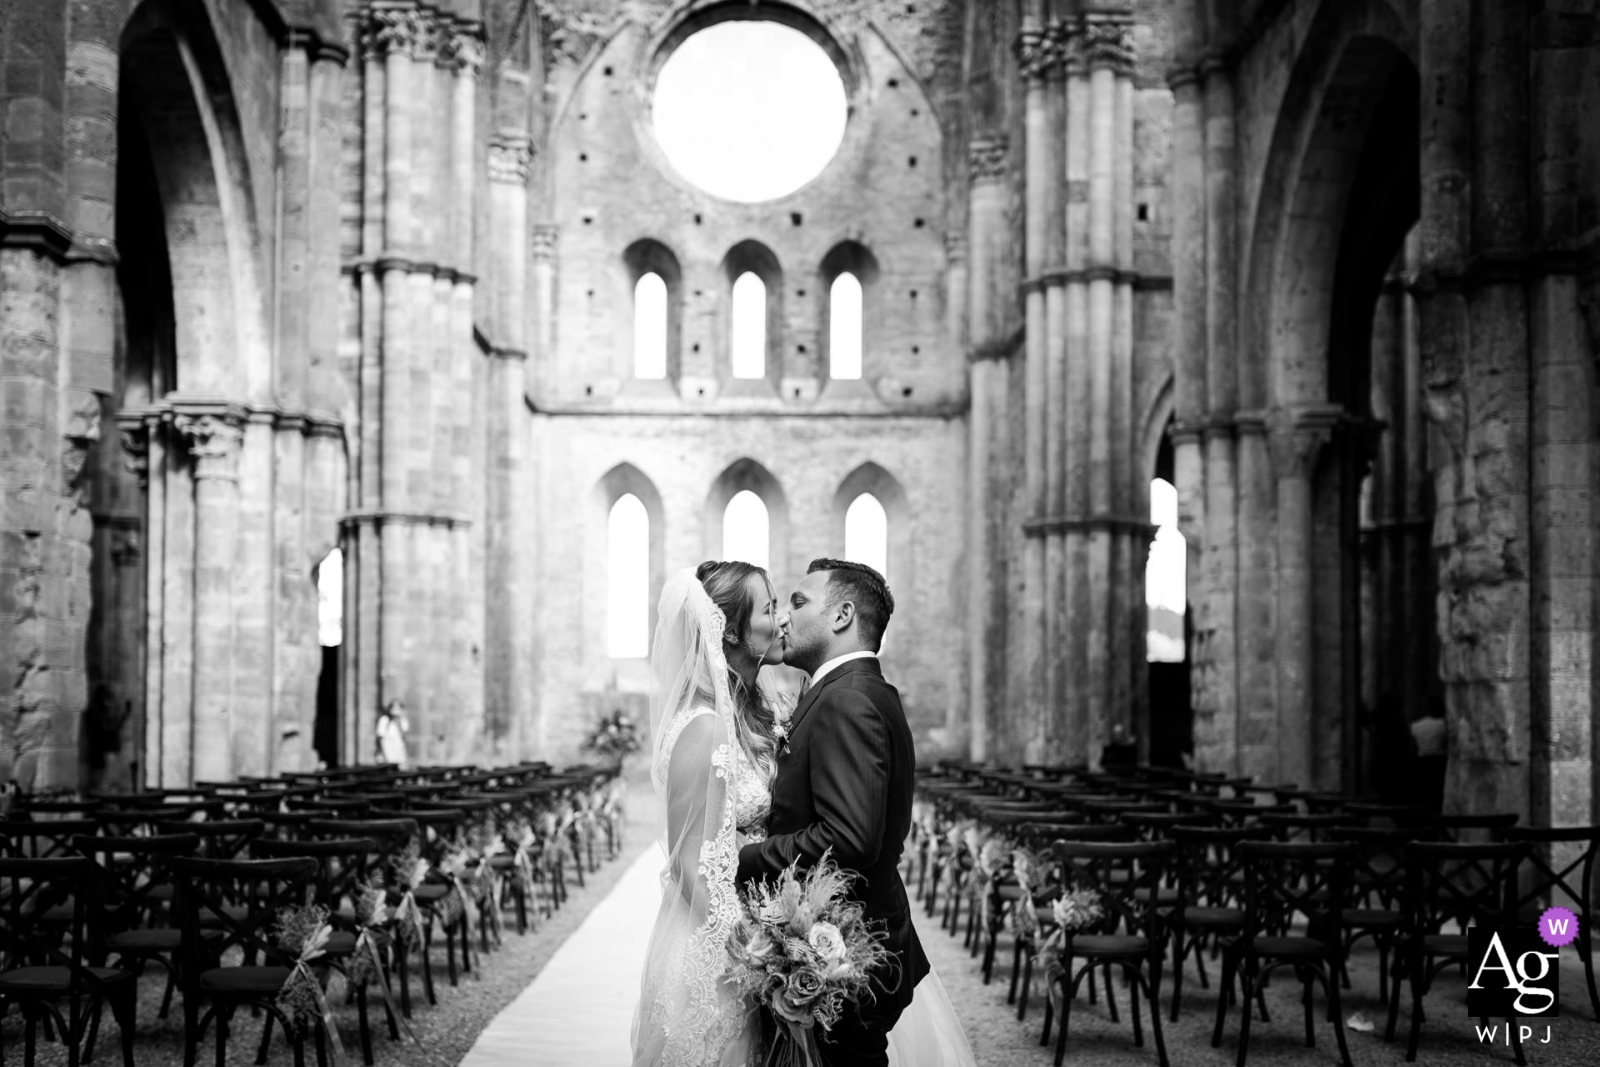 San Galgano Abbey, Siena, Italy fine art church ruins wedding couple picture of the bride and groom are kissing after the ceremony